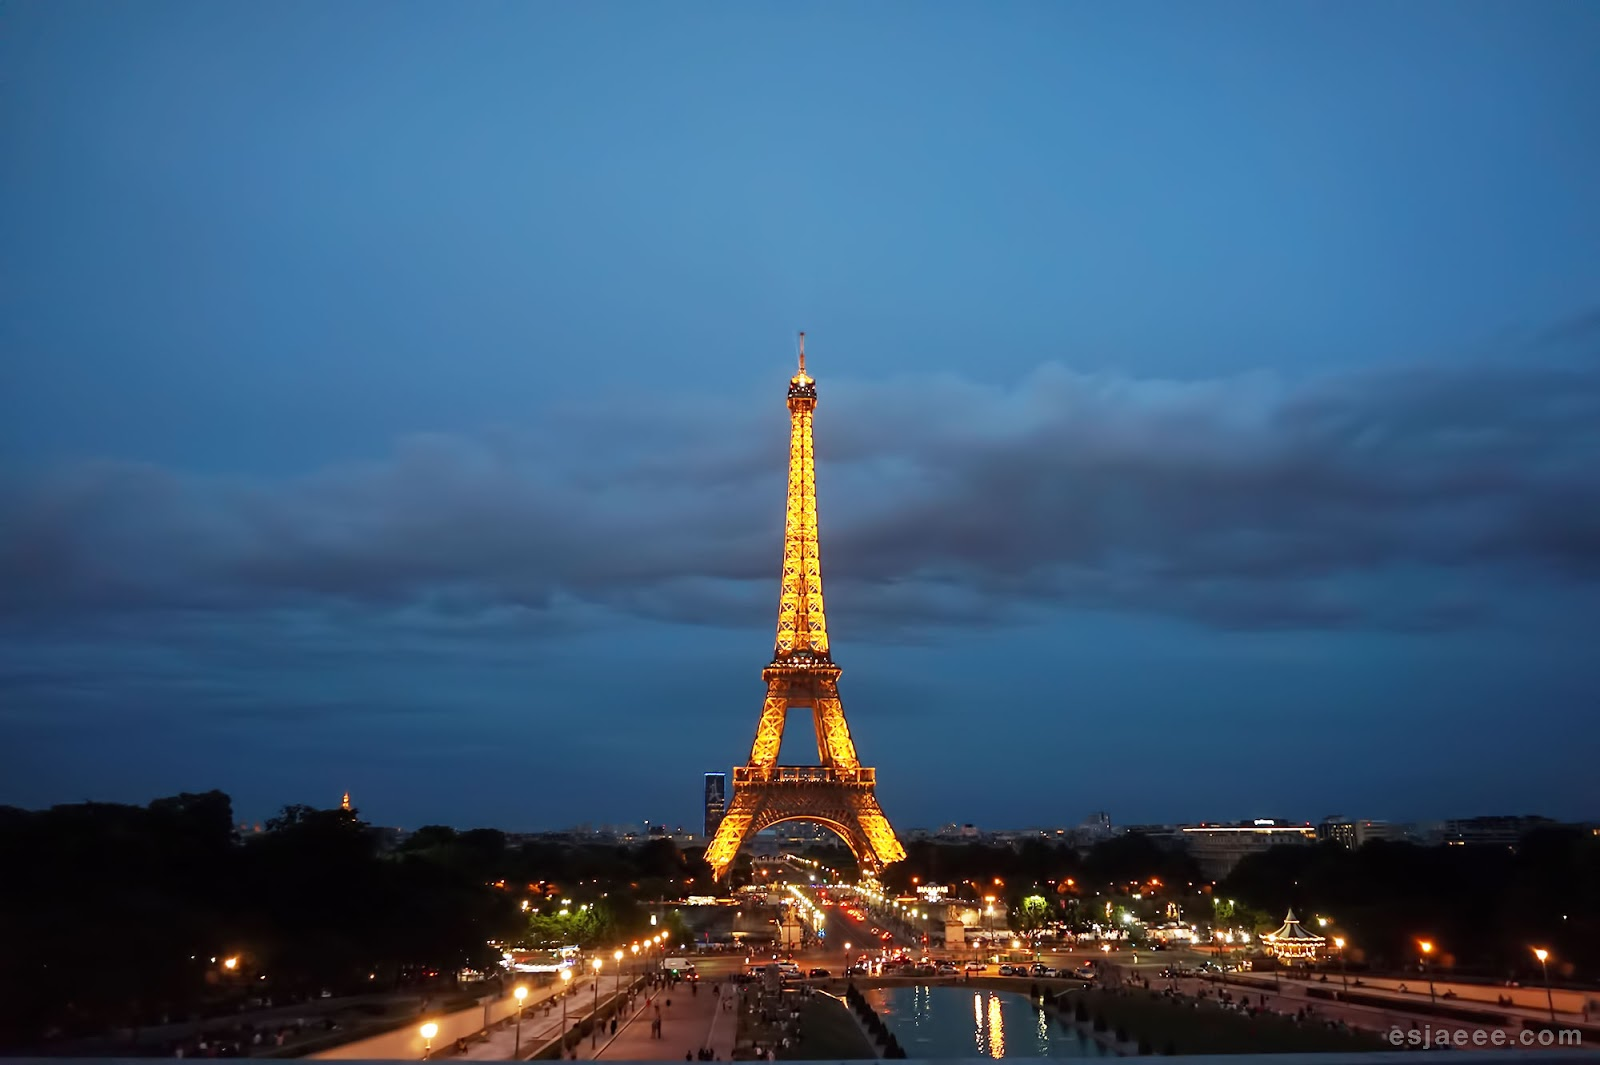 View of Eiffel Tower at Night from Trocadero